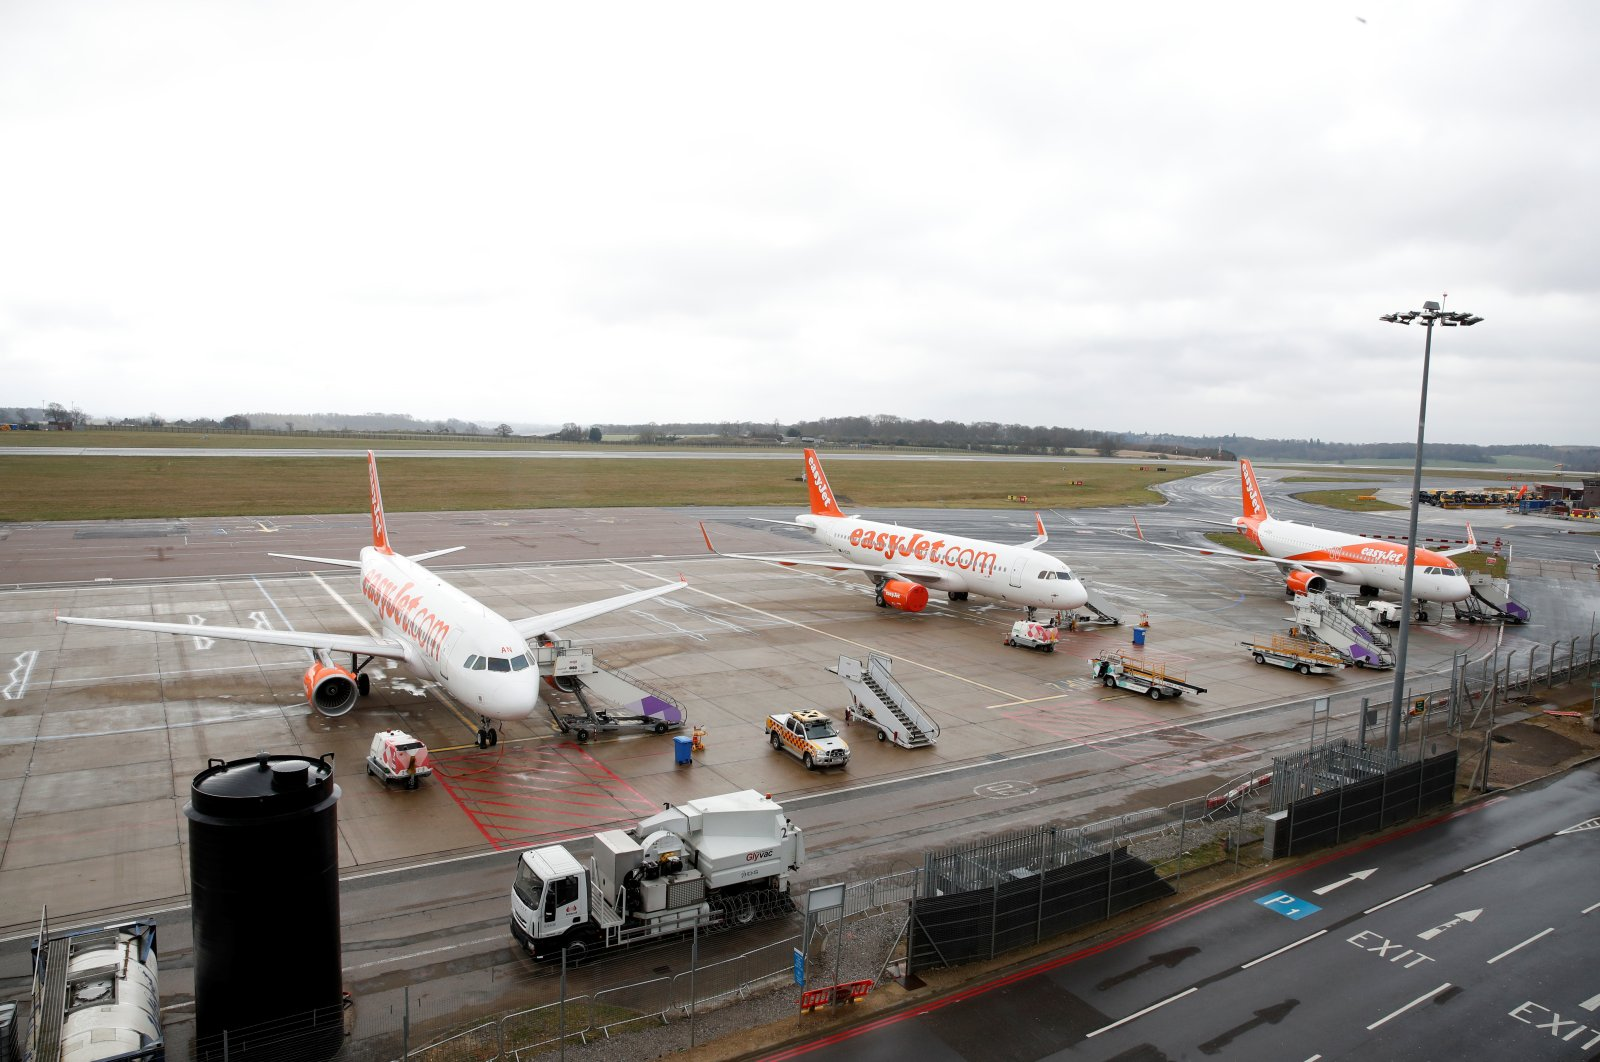 Easyjet planes are seen parked at Luton airport after easyJet announced it has grounded its entire fleet, as the spread of the coronavirus continues, Luton, Britain, Monday, March 30, 2020. (REUTERS Photo)